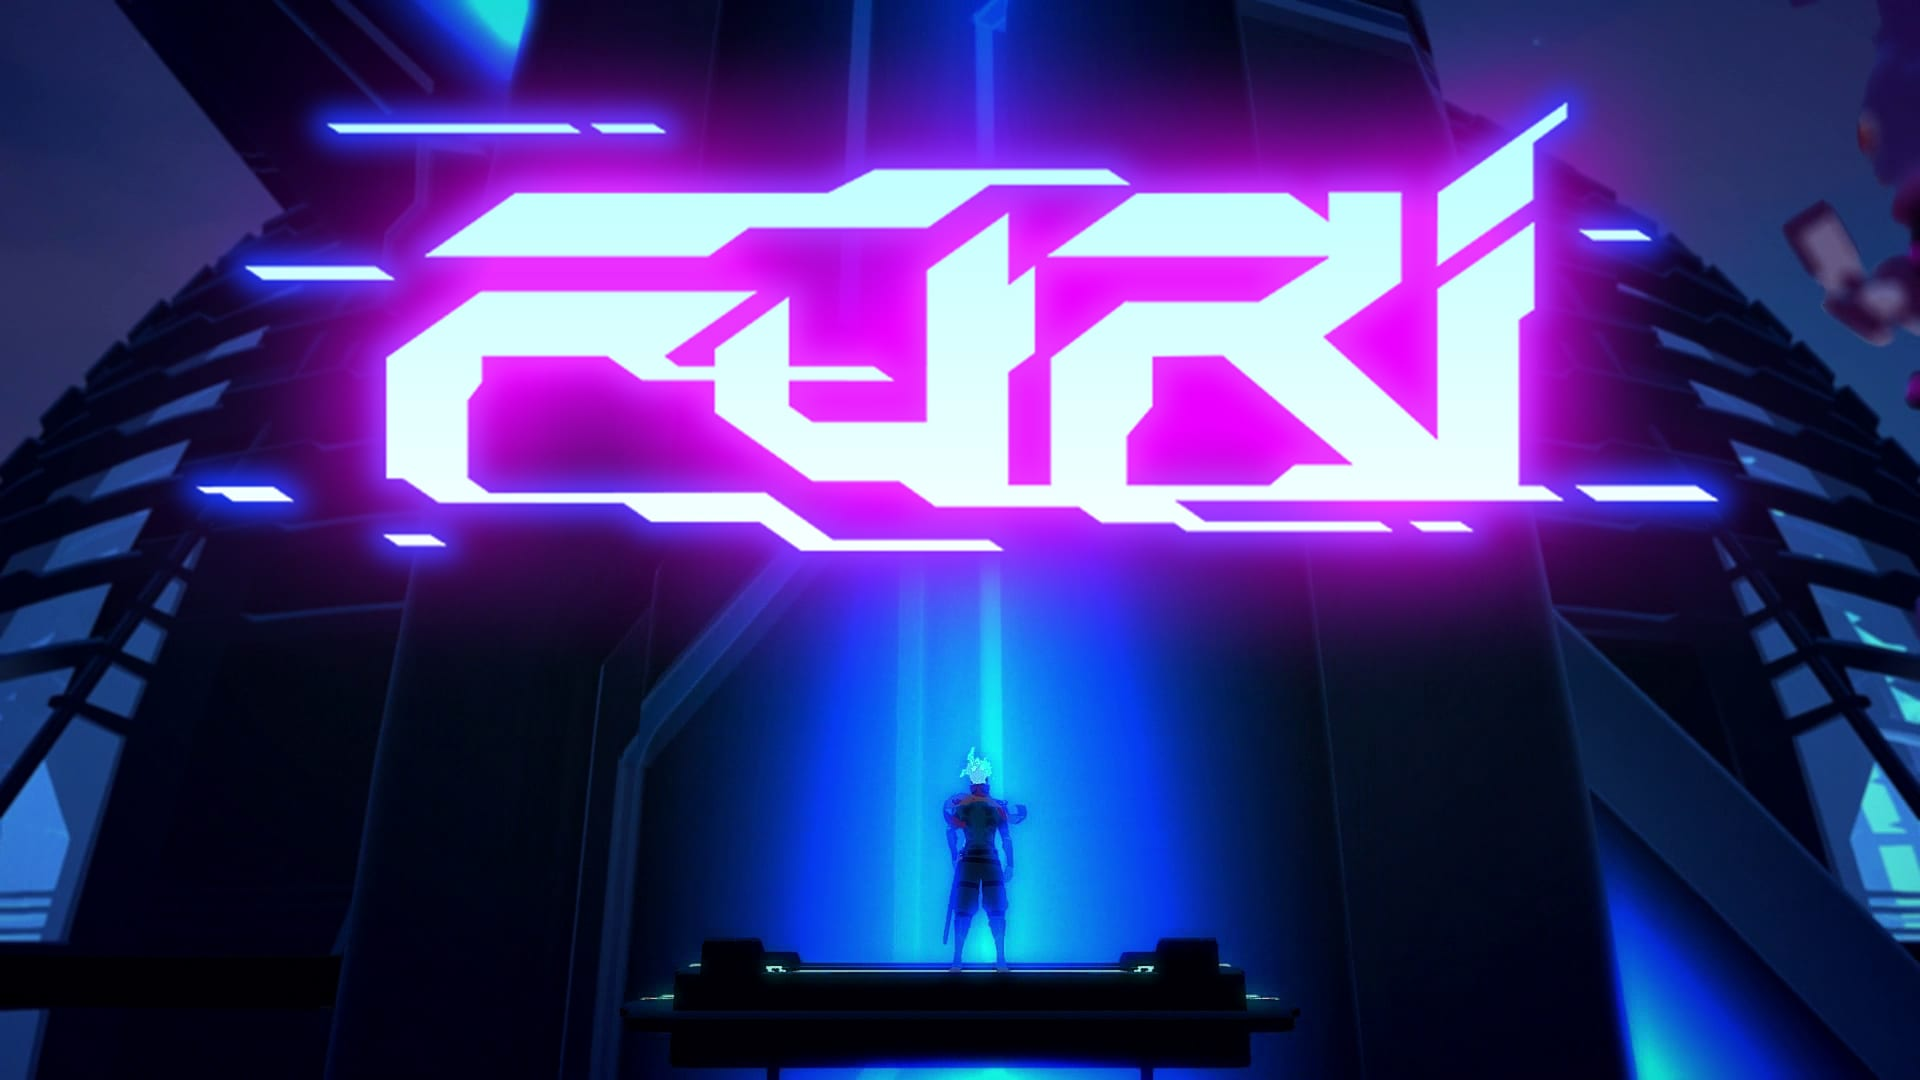 Furi is coming to the Xbox One